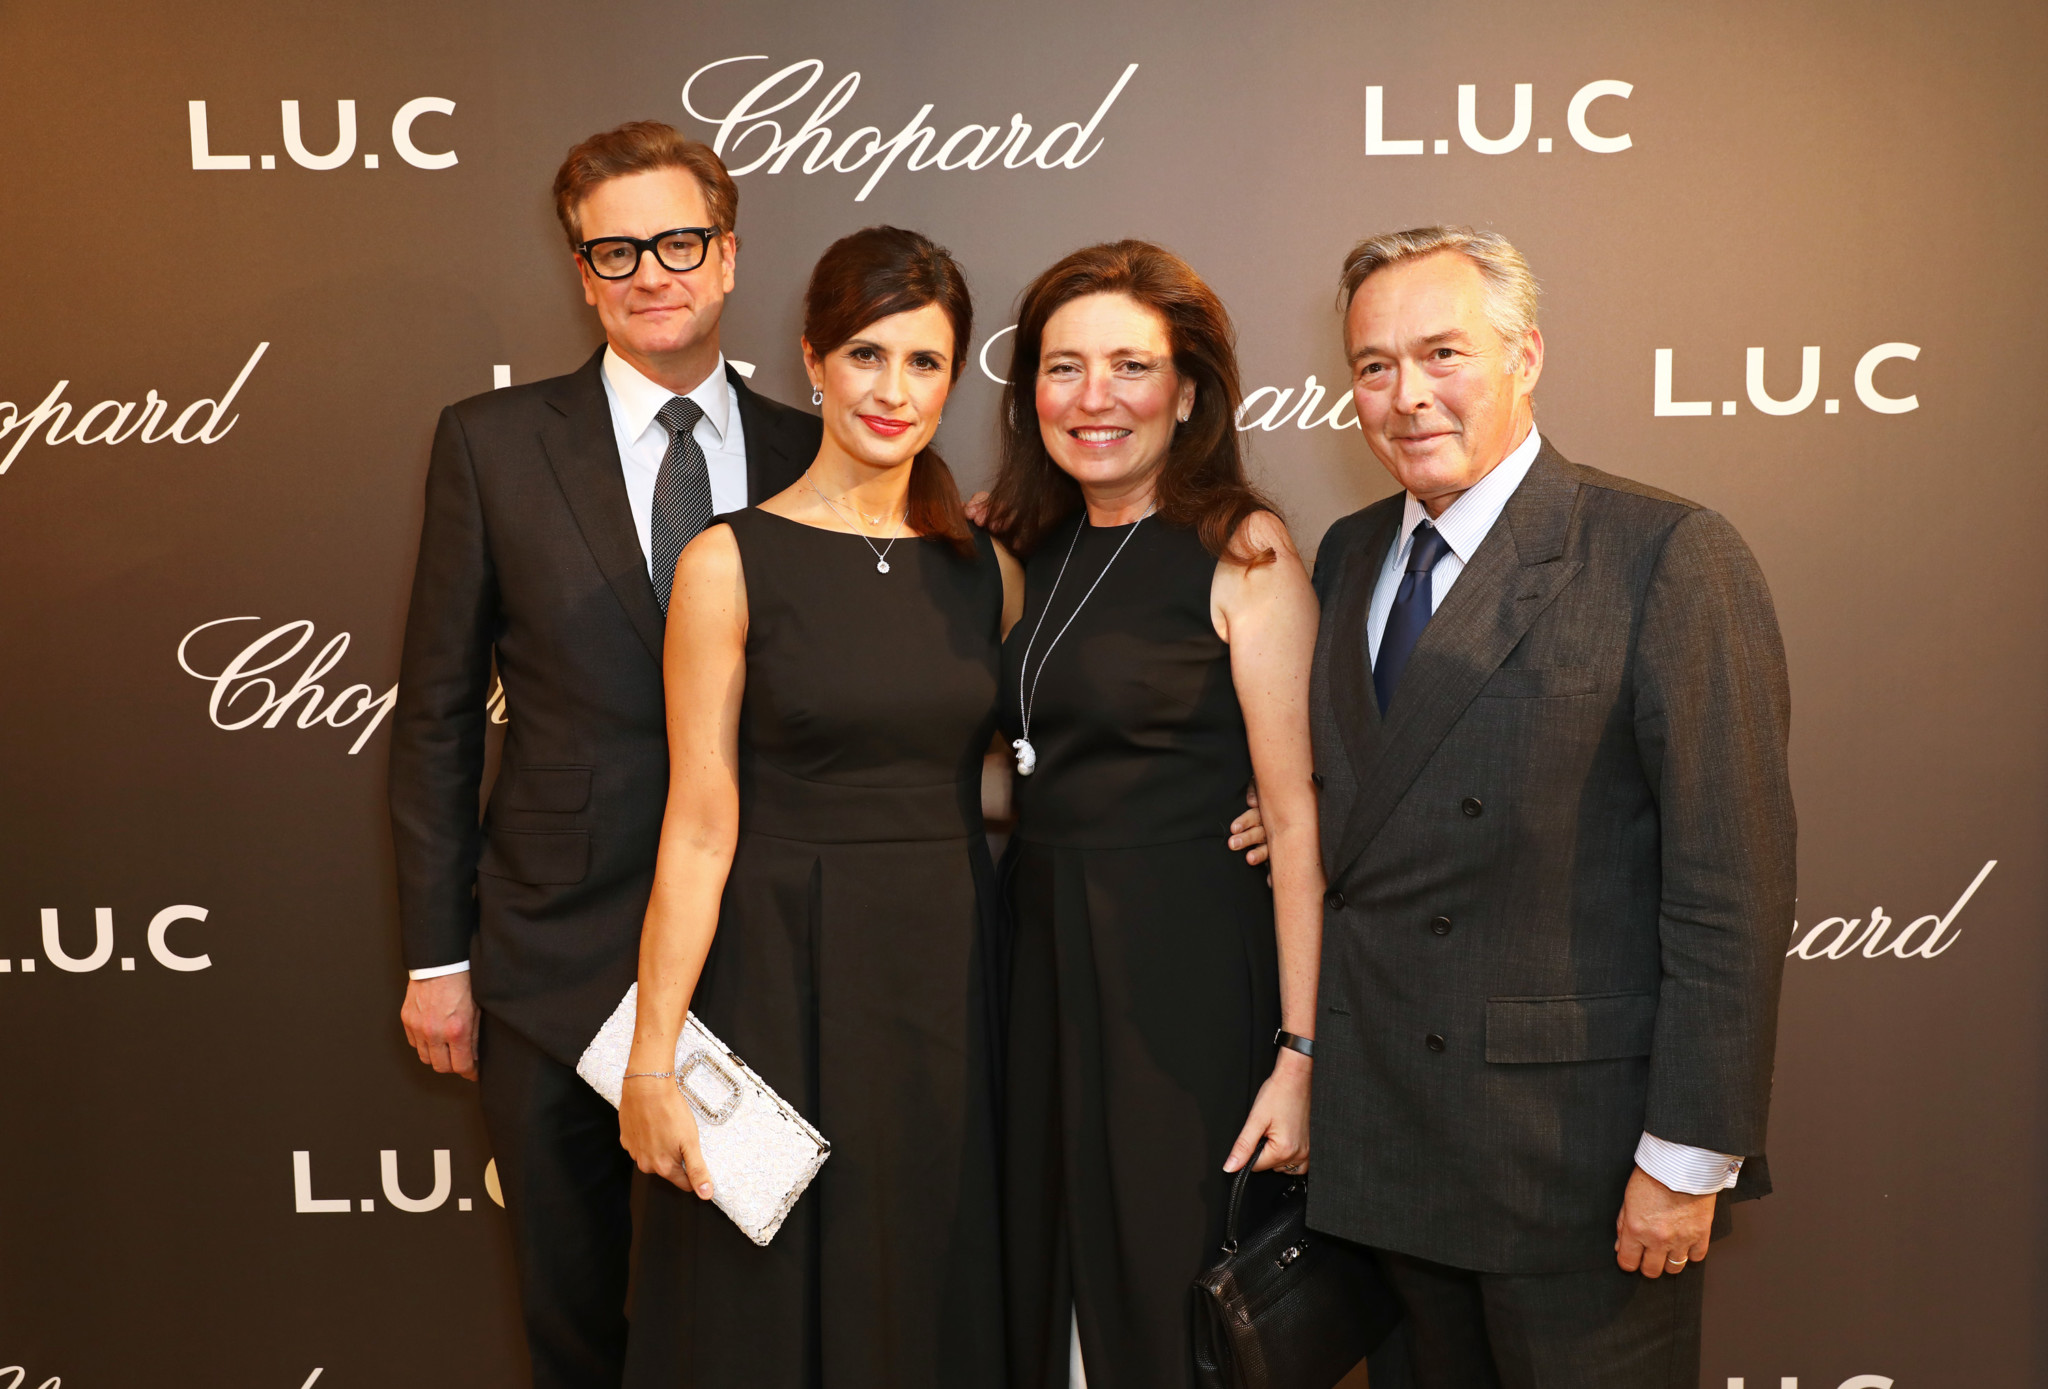 Cocktail Opening Of The Chopard Exhibition 'L.U.C – L'art d'une Manufacture' at Phillips Gallery